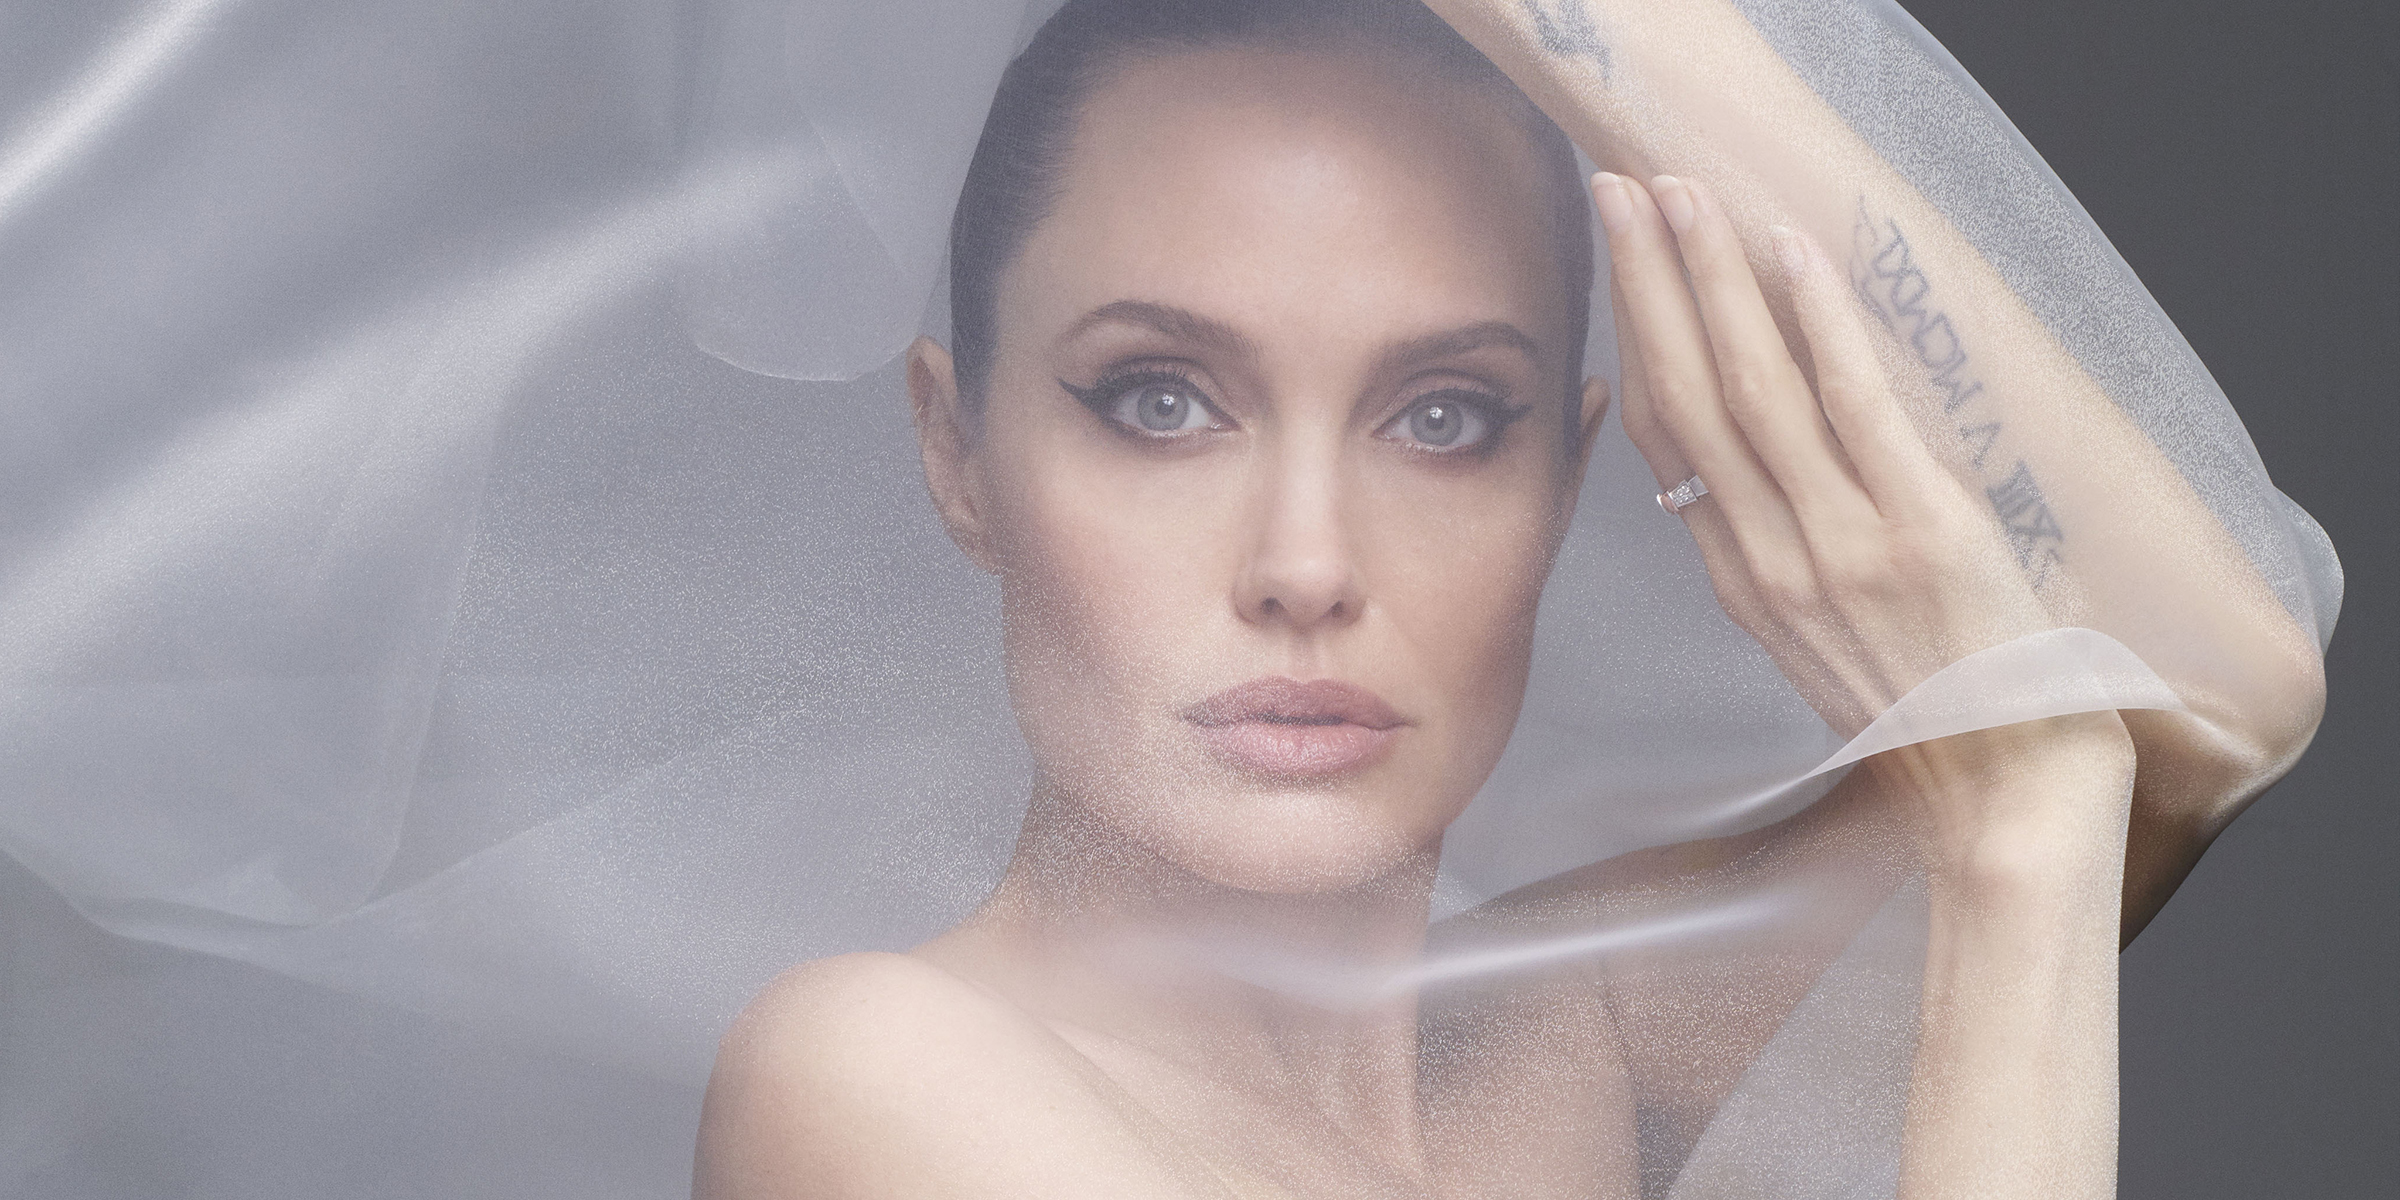 Angelina Jolie poses nude on Harper's Bazaar cover